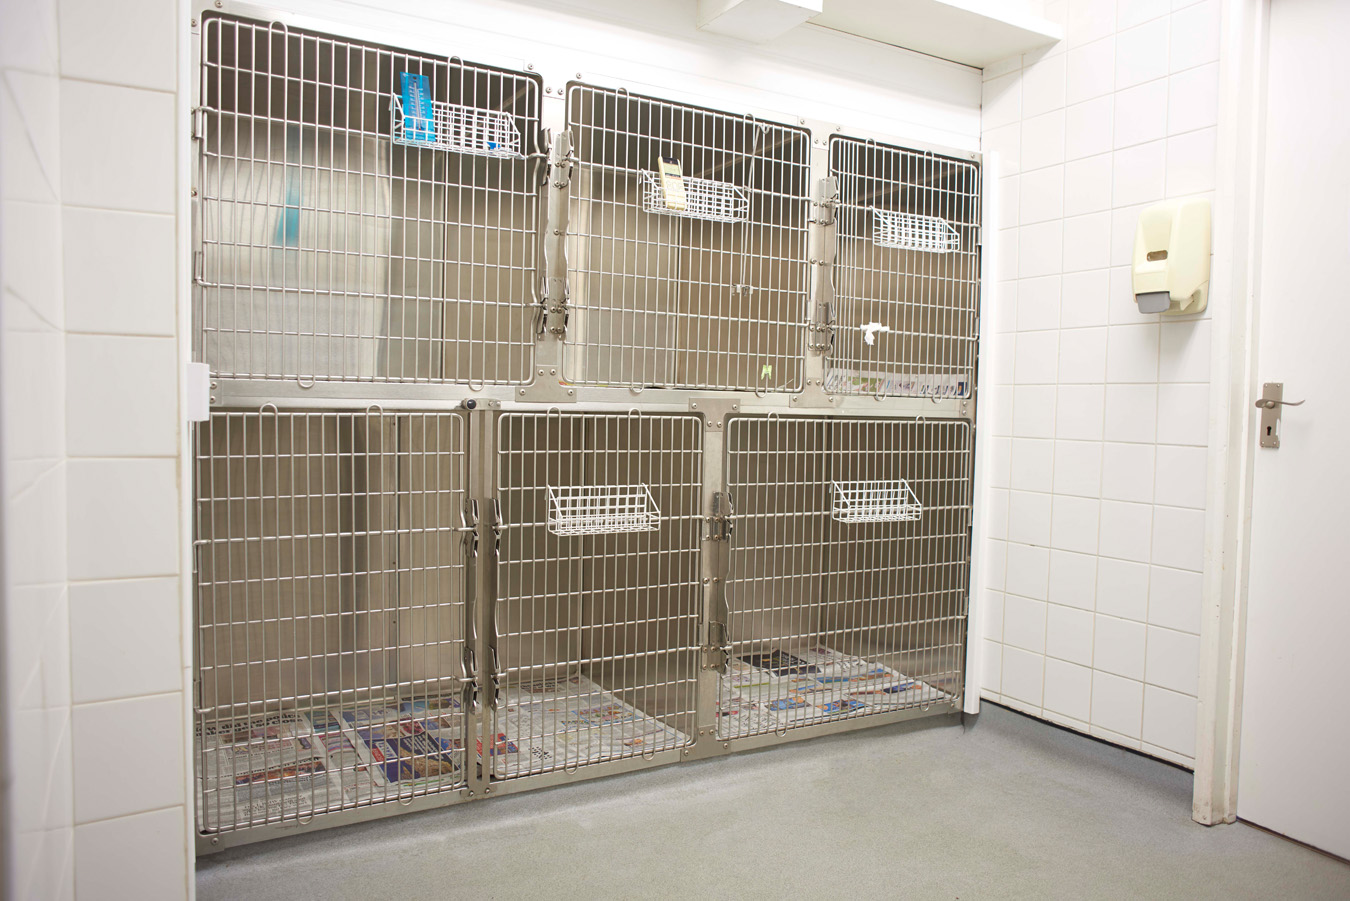 Riverside Vets Facilities - Air Conditioned Kennels